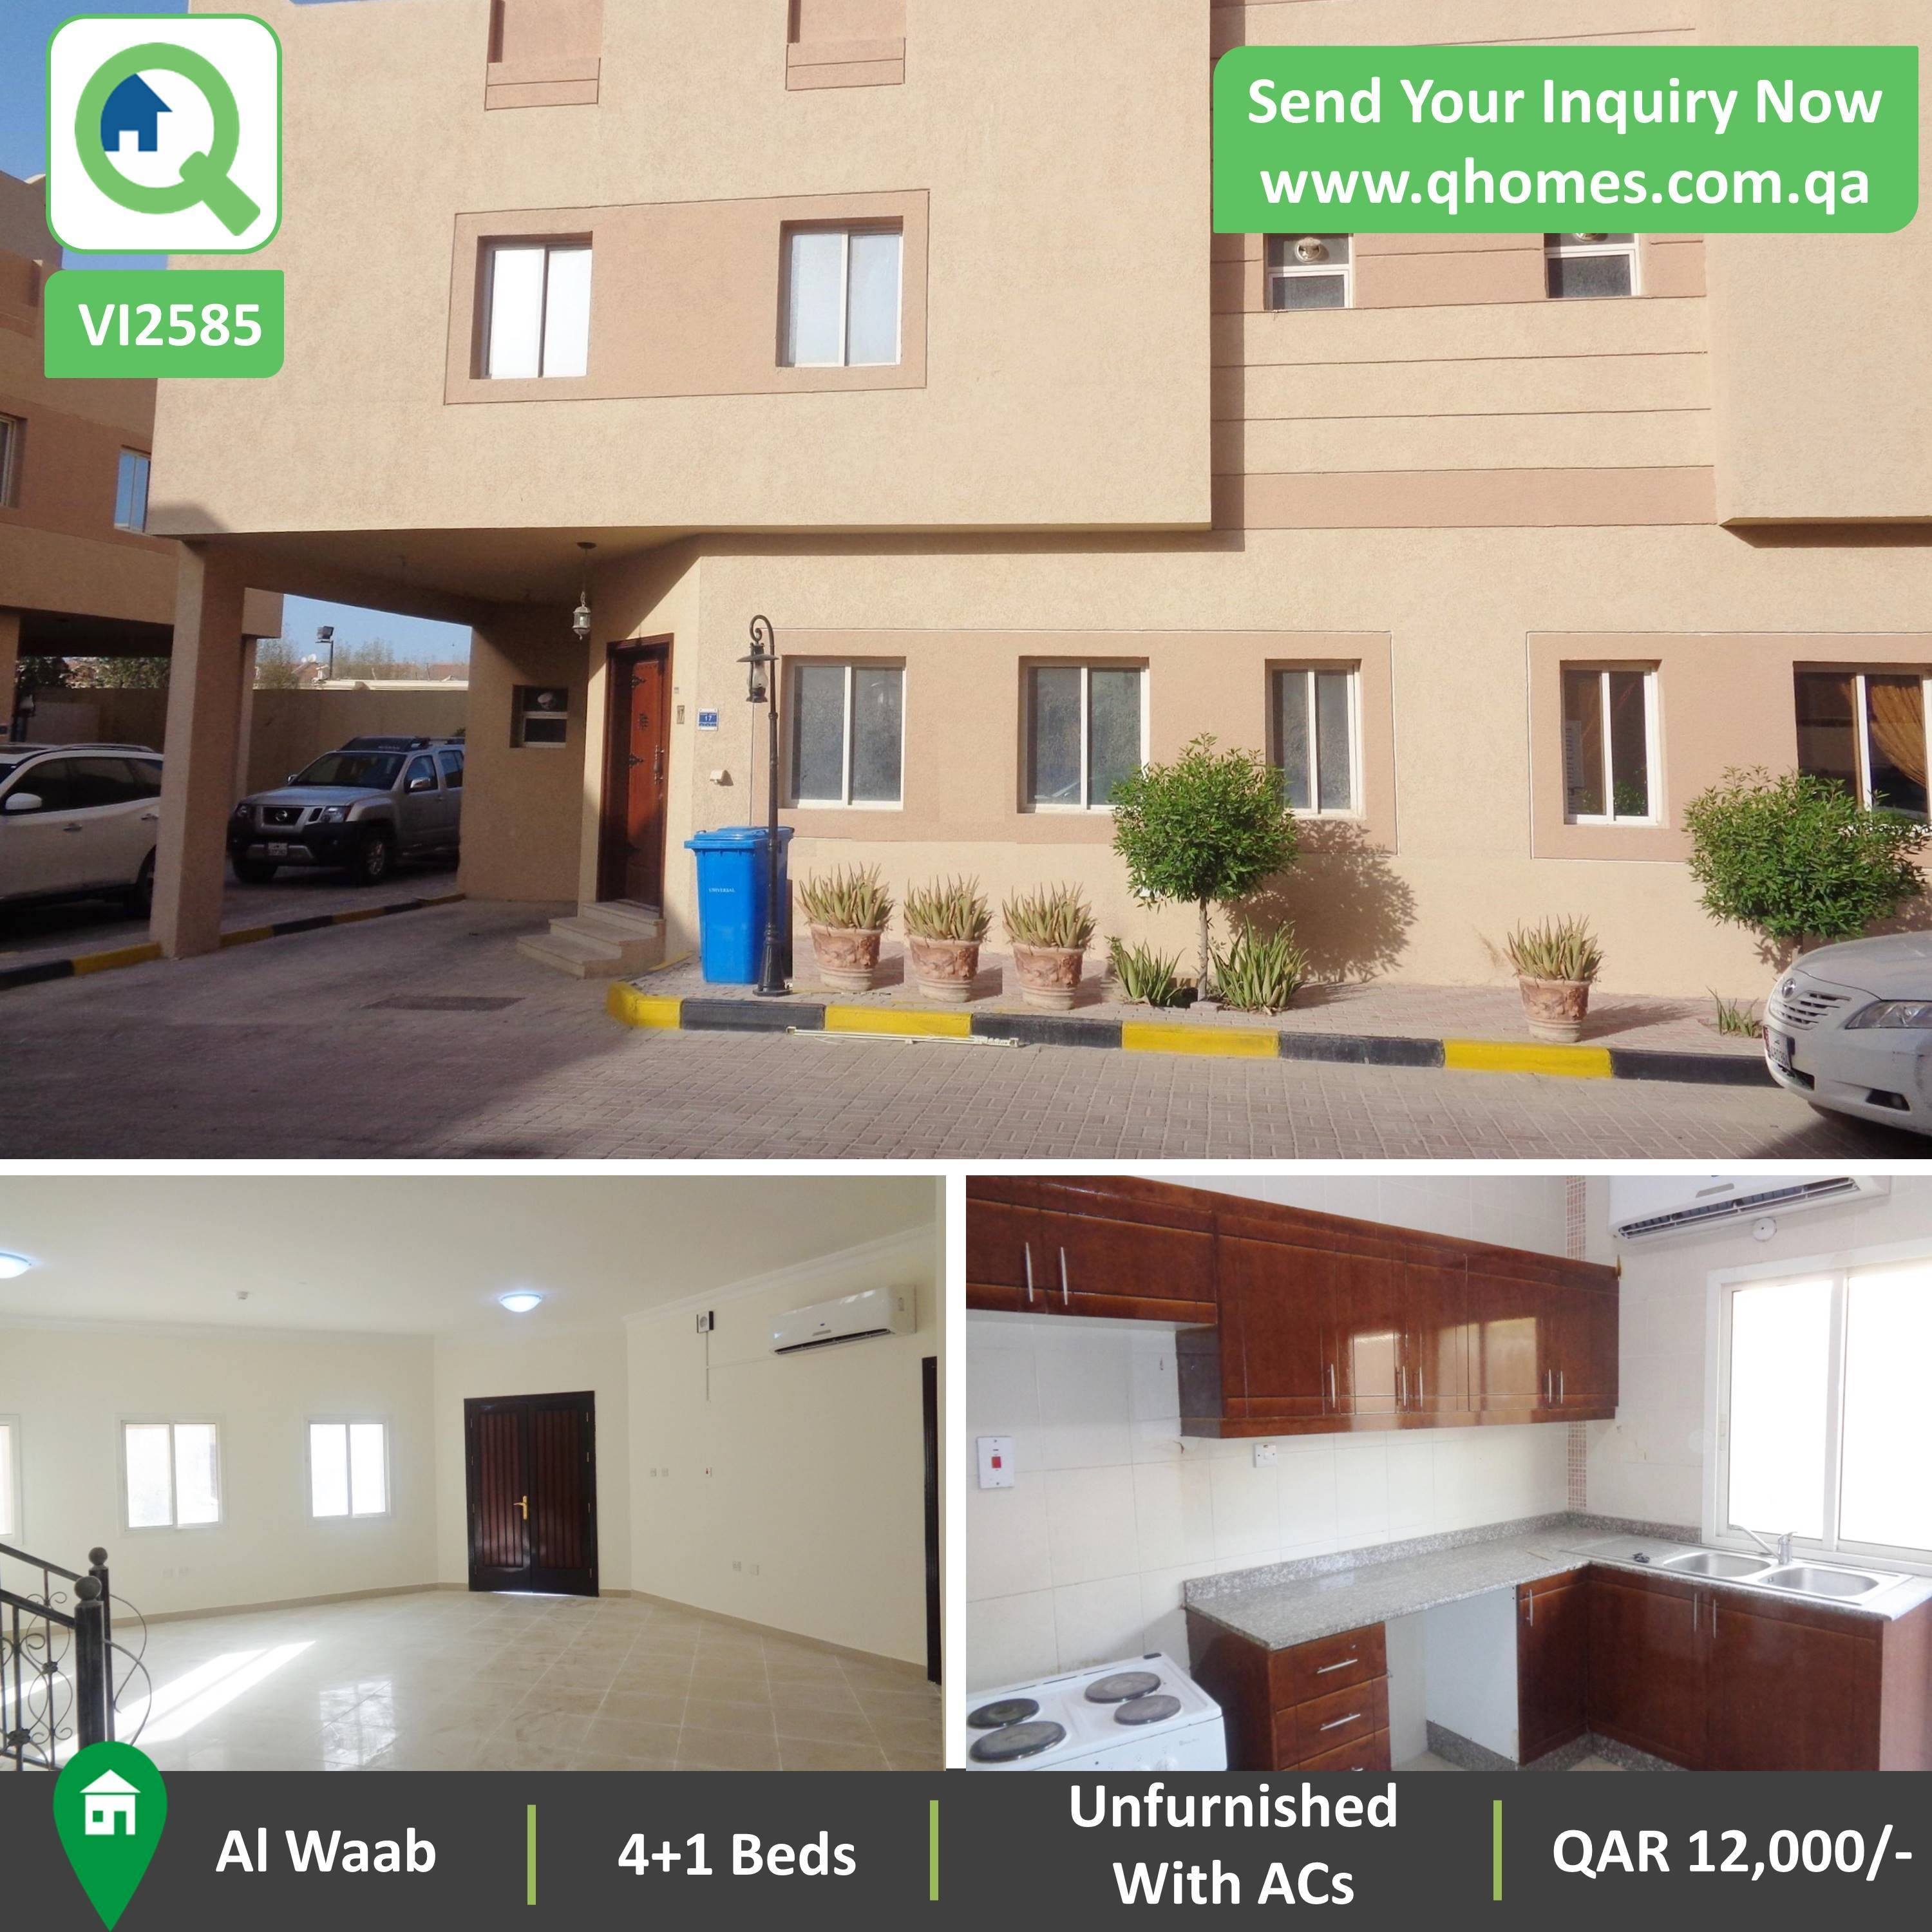 villa for rent in qatar: unfurnished (with acs) 4+1 bedrooms